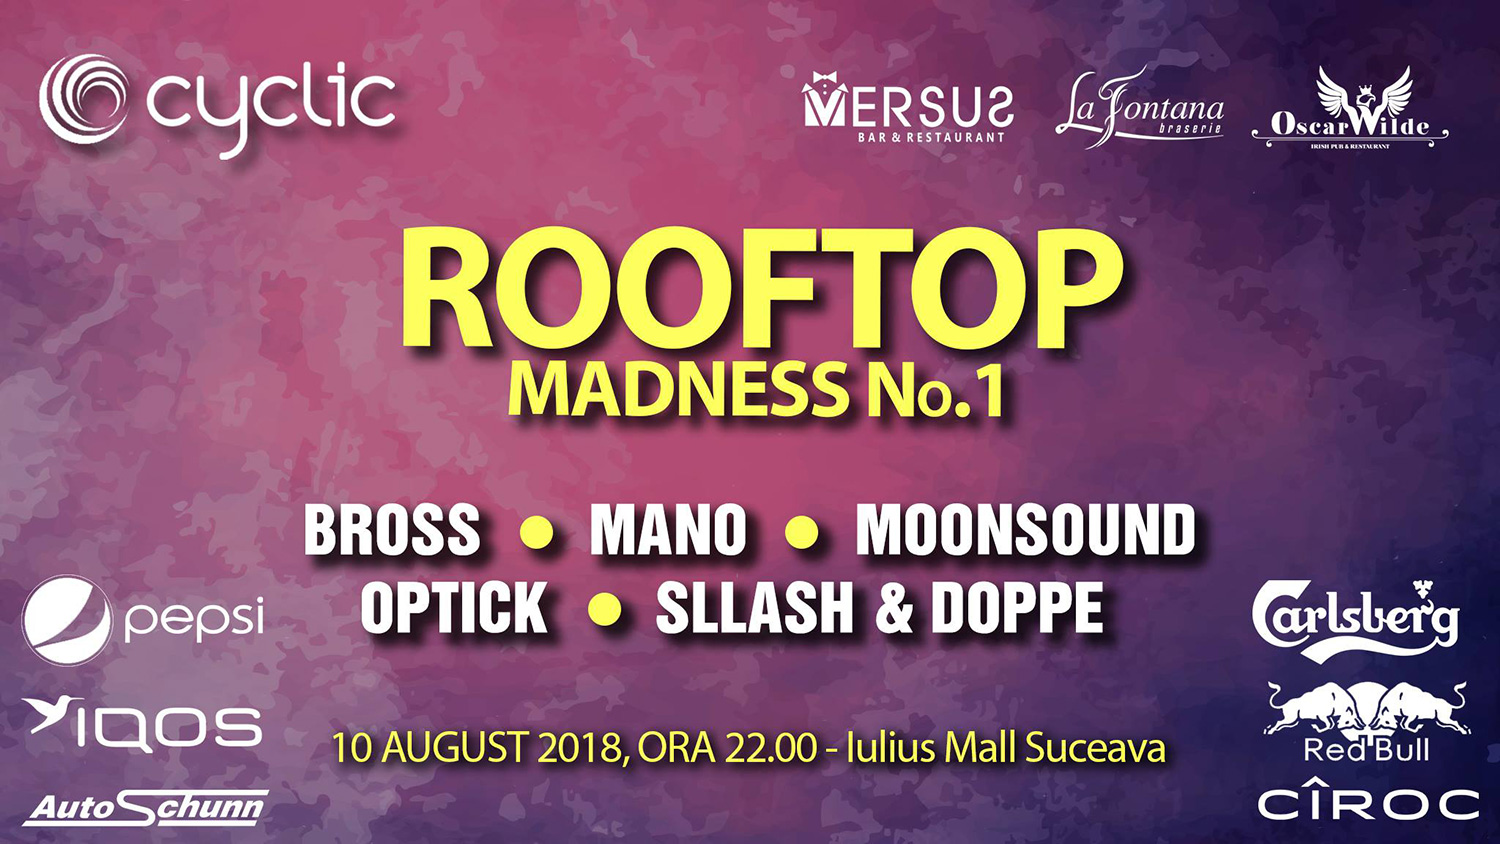 Rooftop Madness No.1